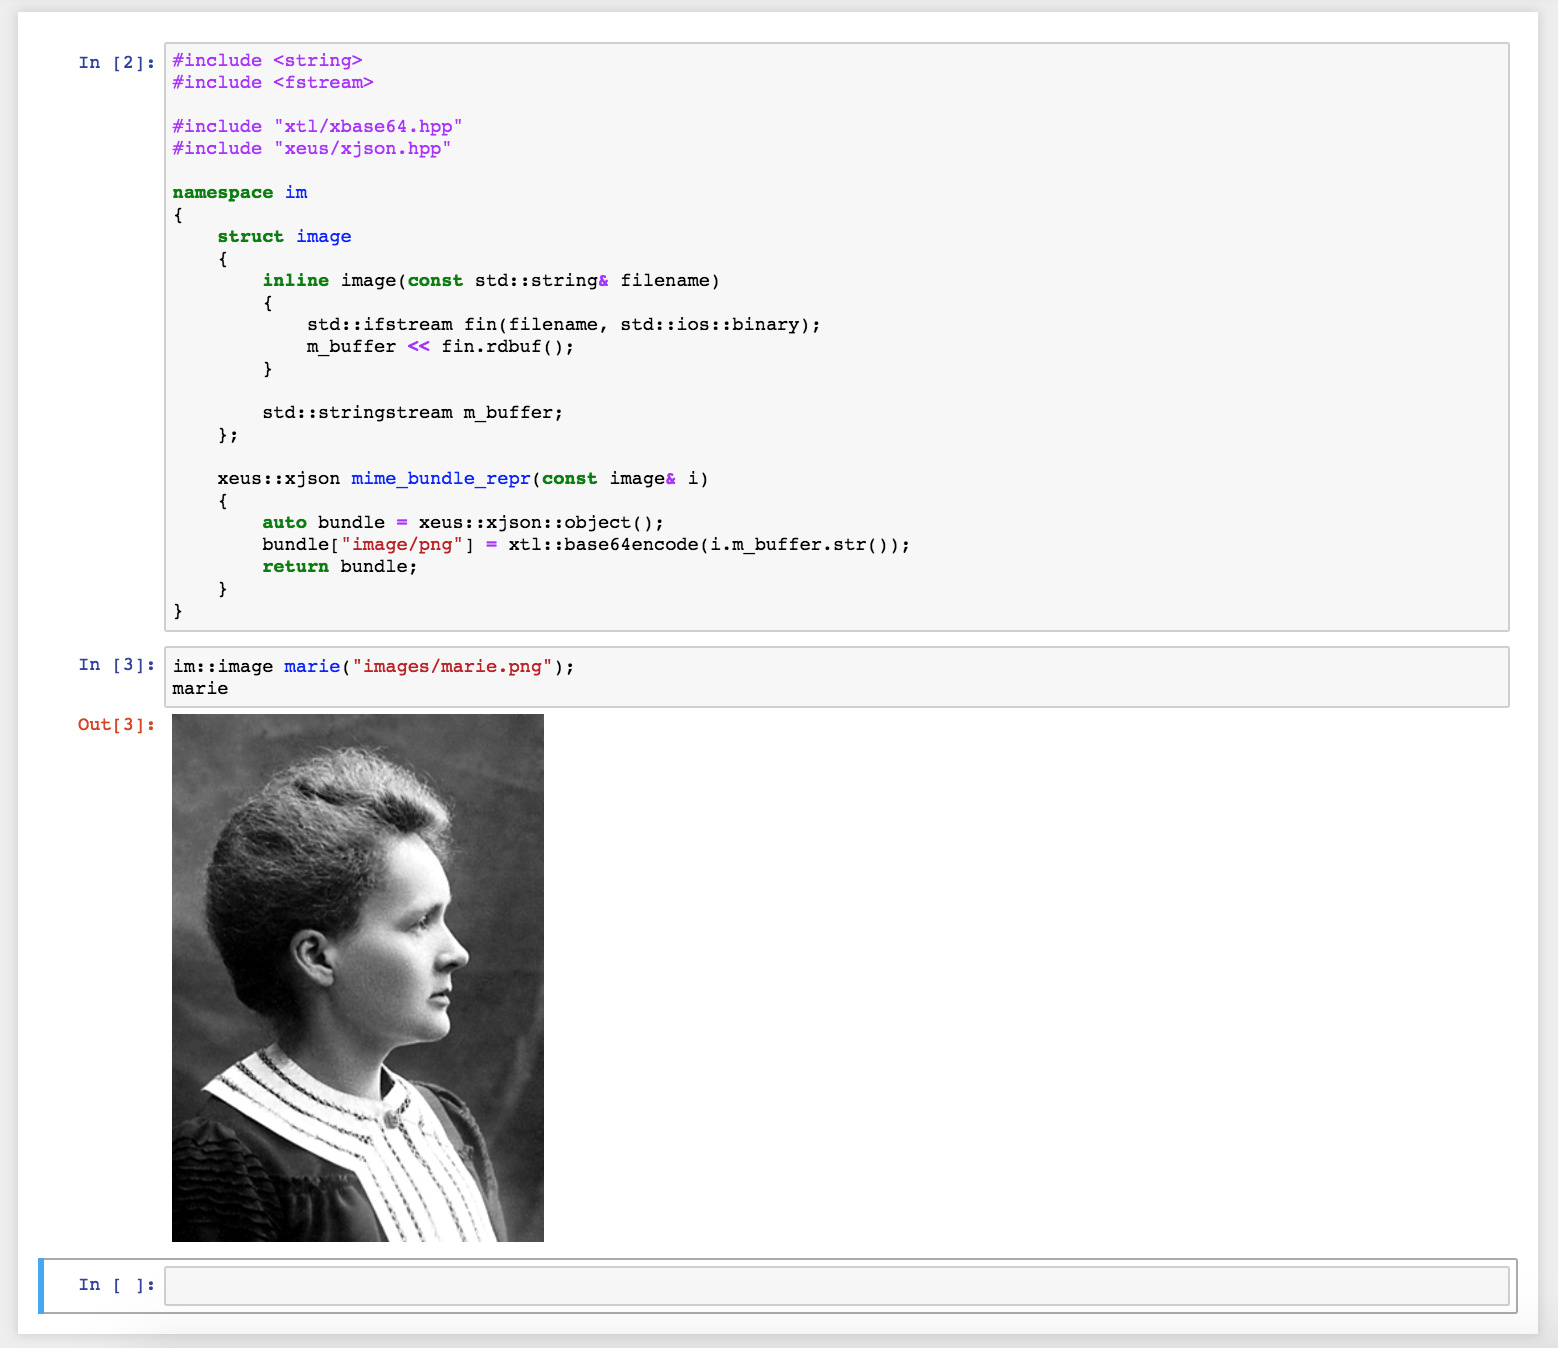 Announcement: A new Cling kernel for Project Jupyter - Cling